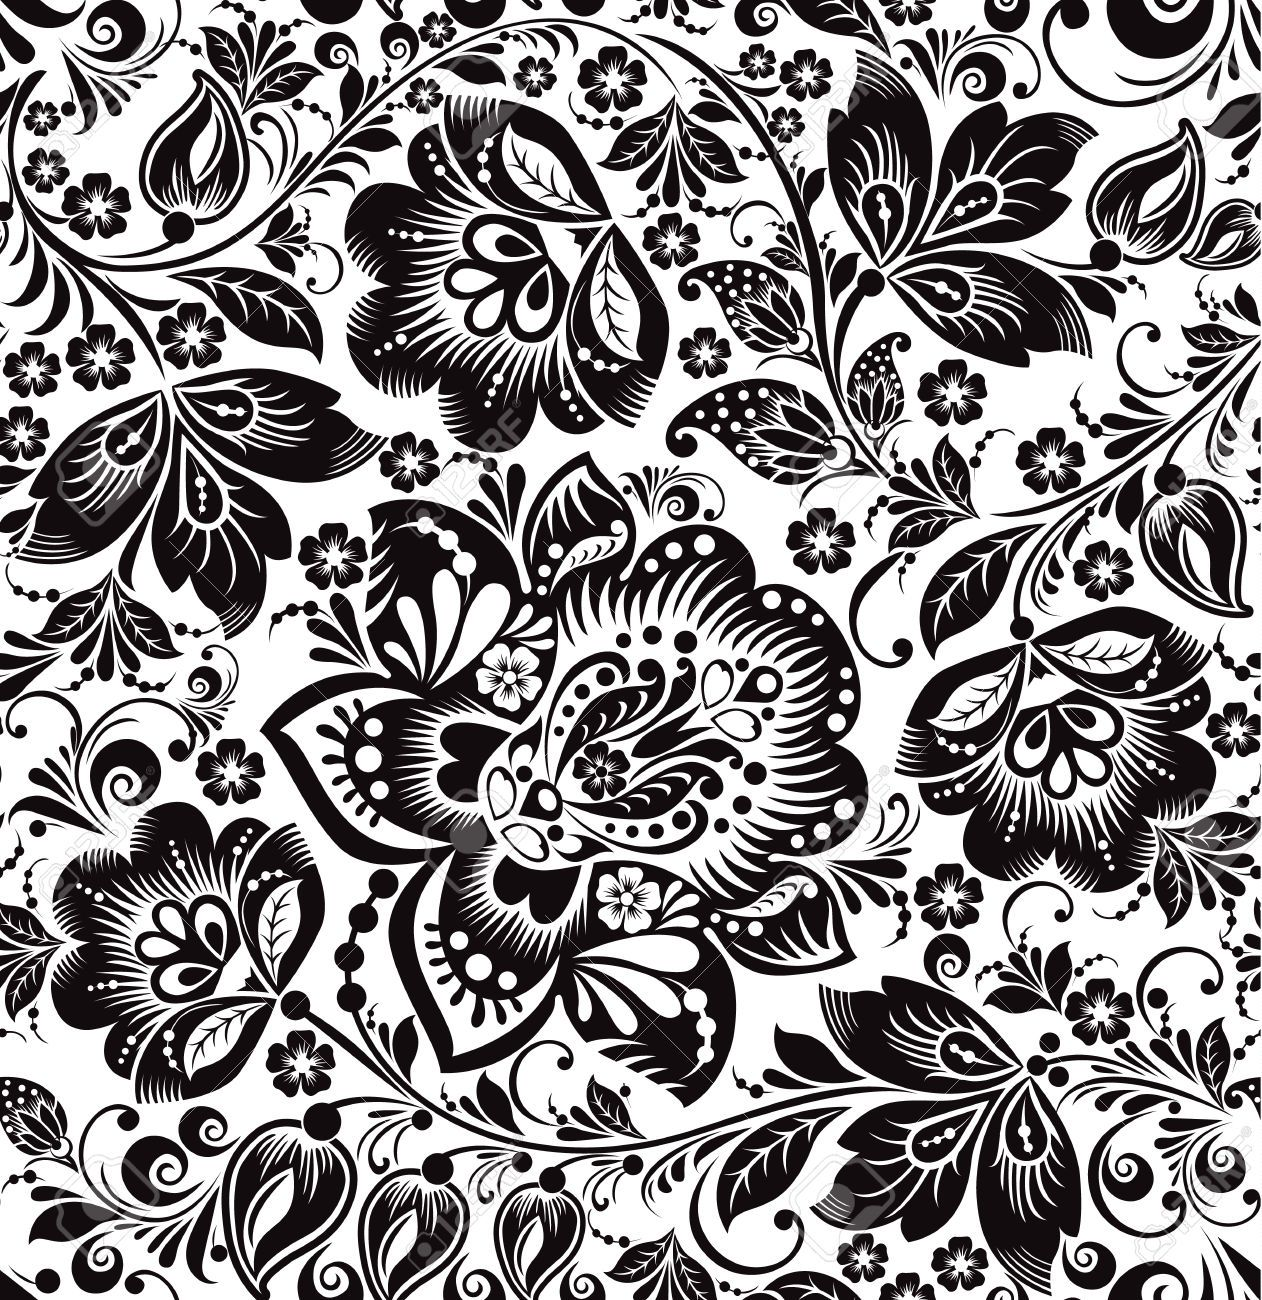 Stock u russia ethnic. Floral pattern vector clipart